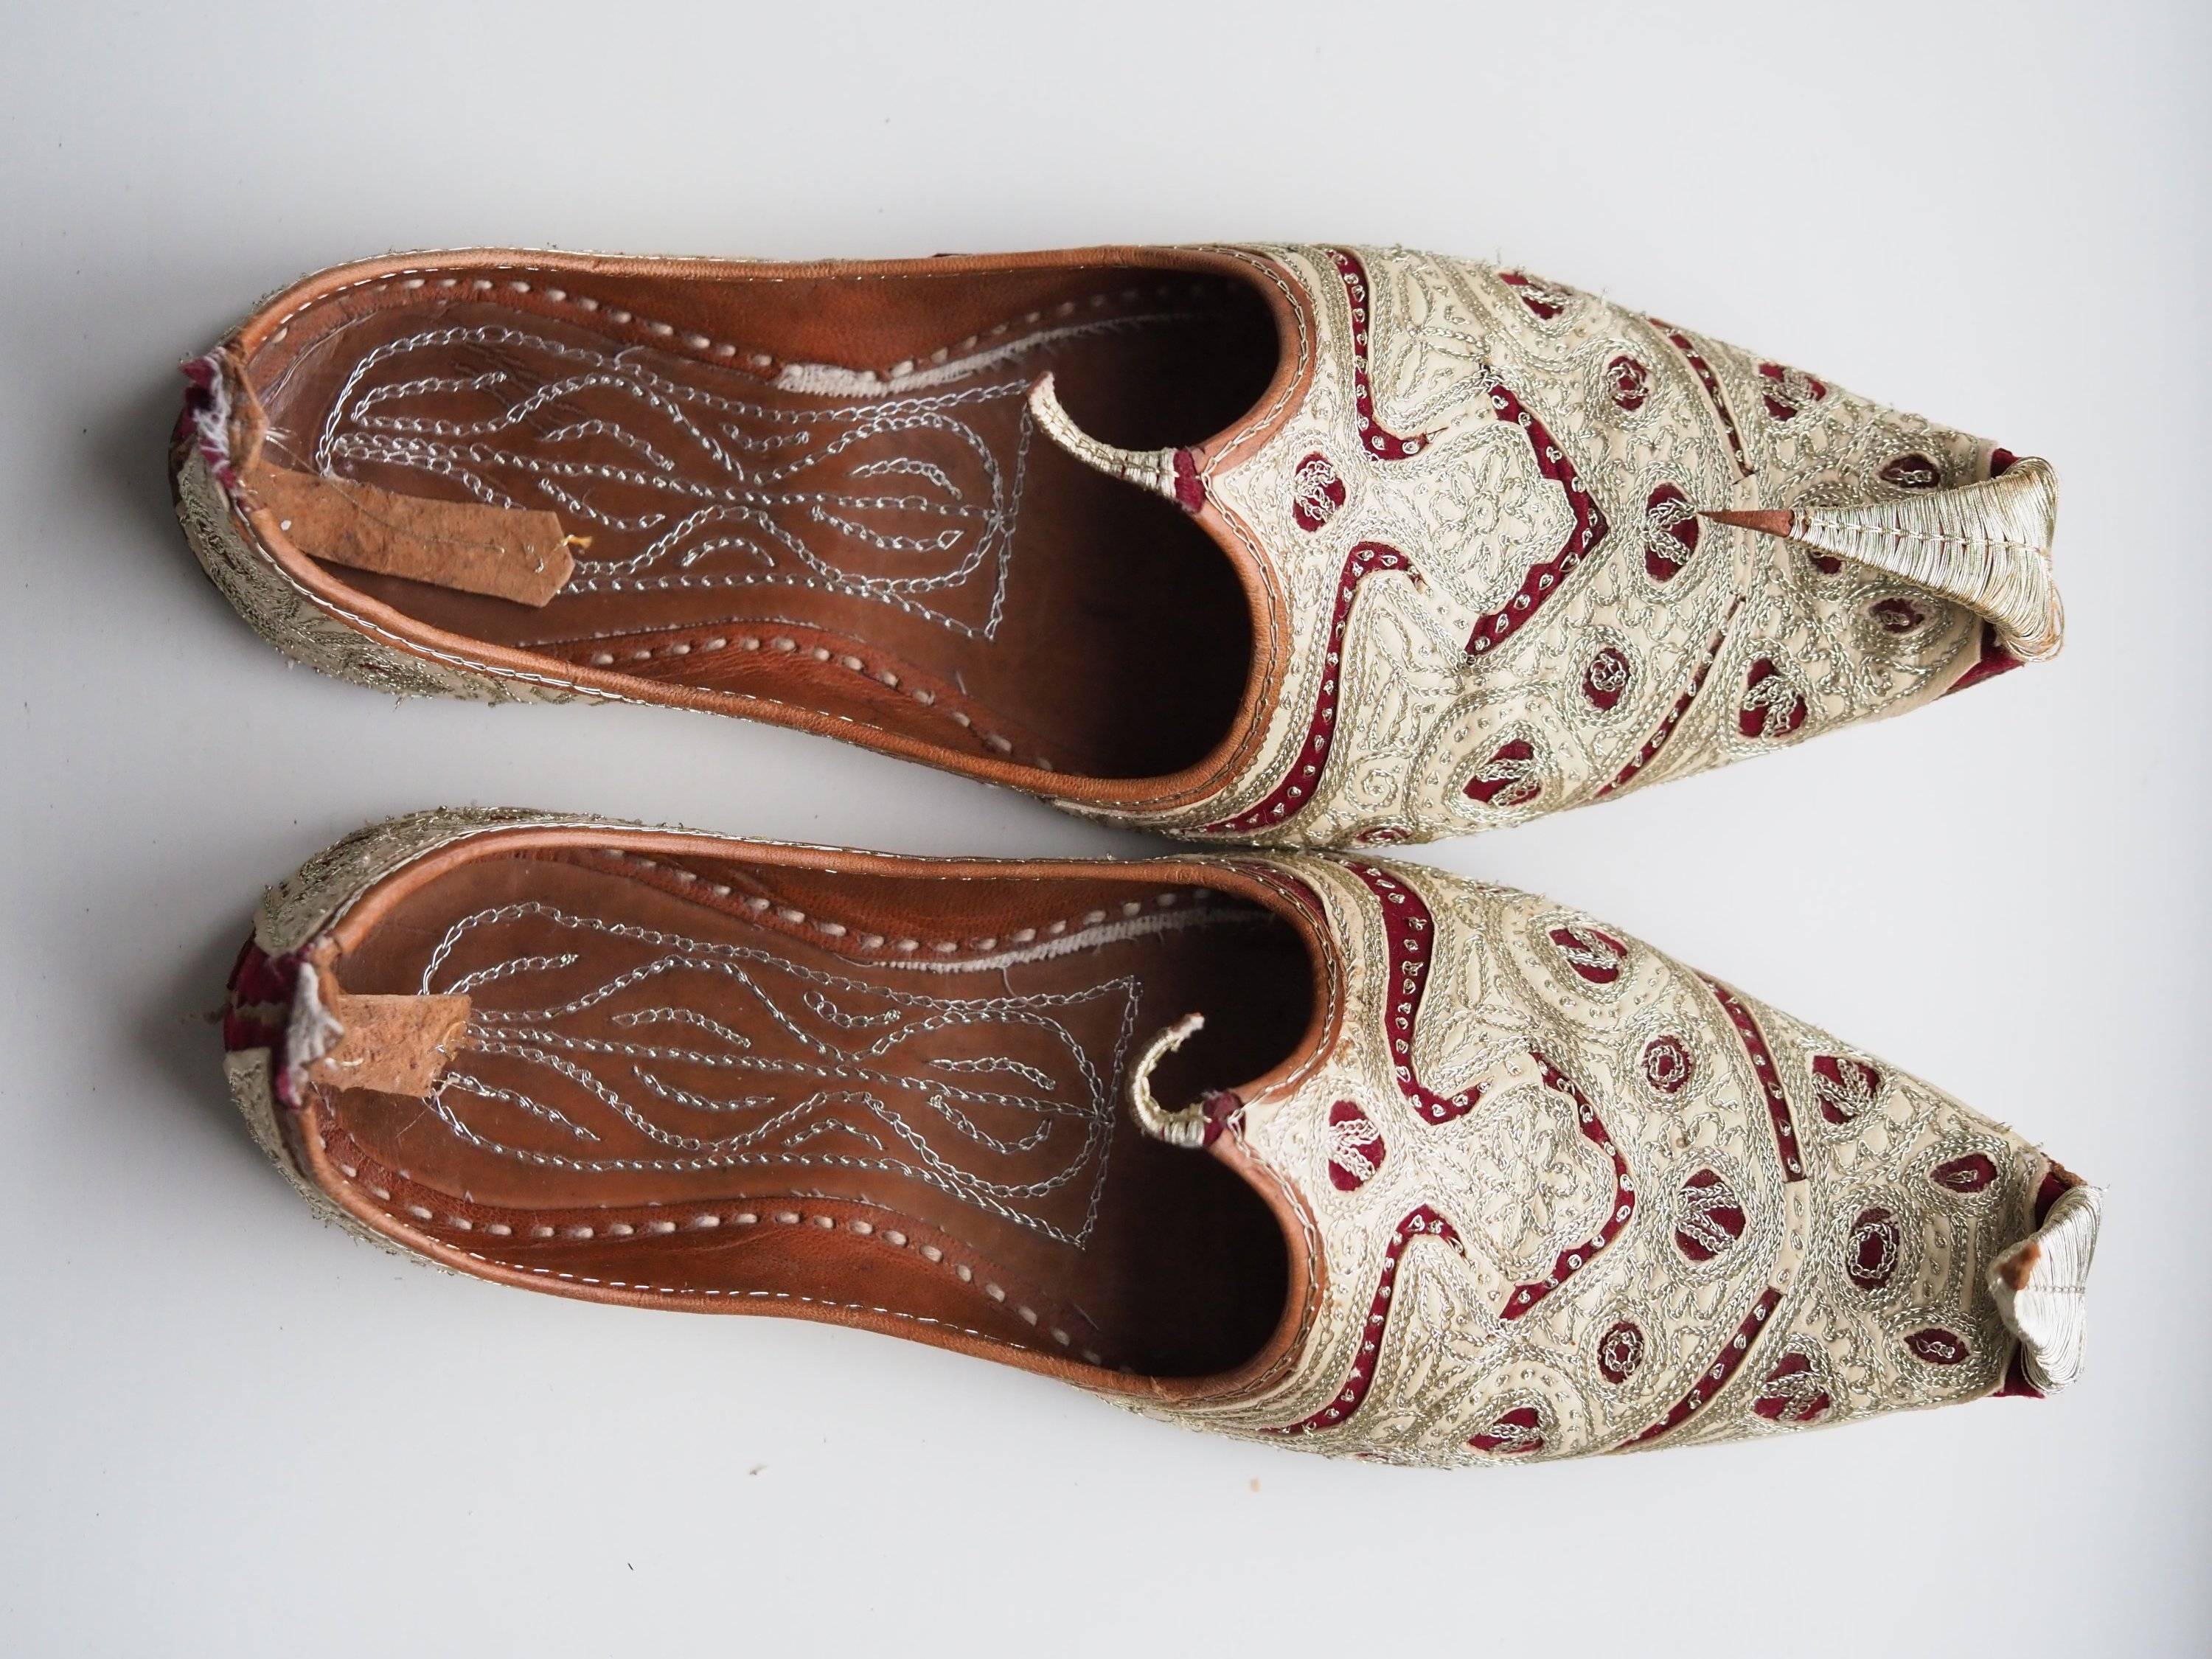 A pair of leather shoes decorated with delicate Turkish embroidery. (Shutterstock Photo)